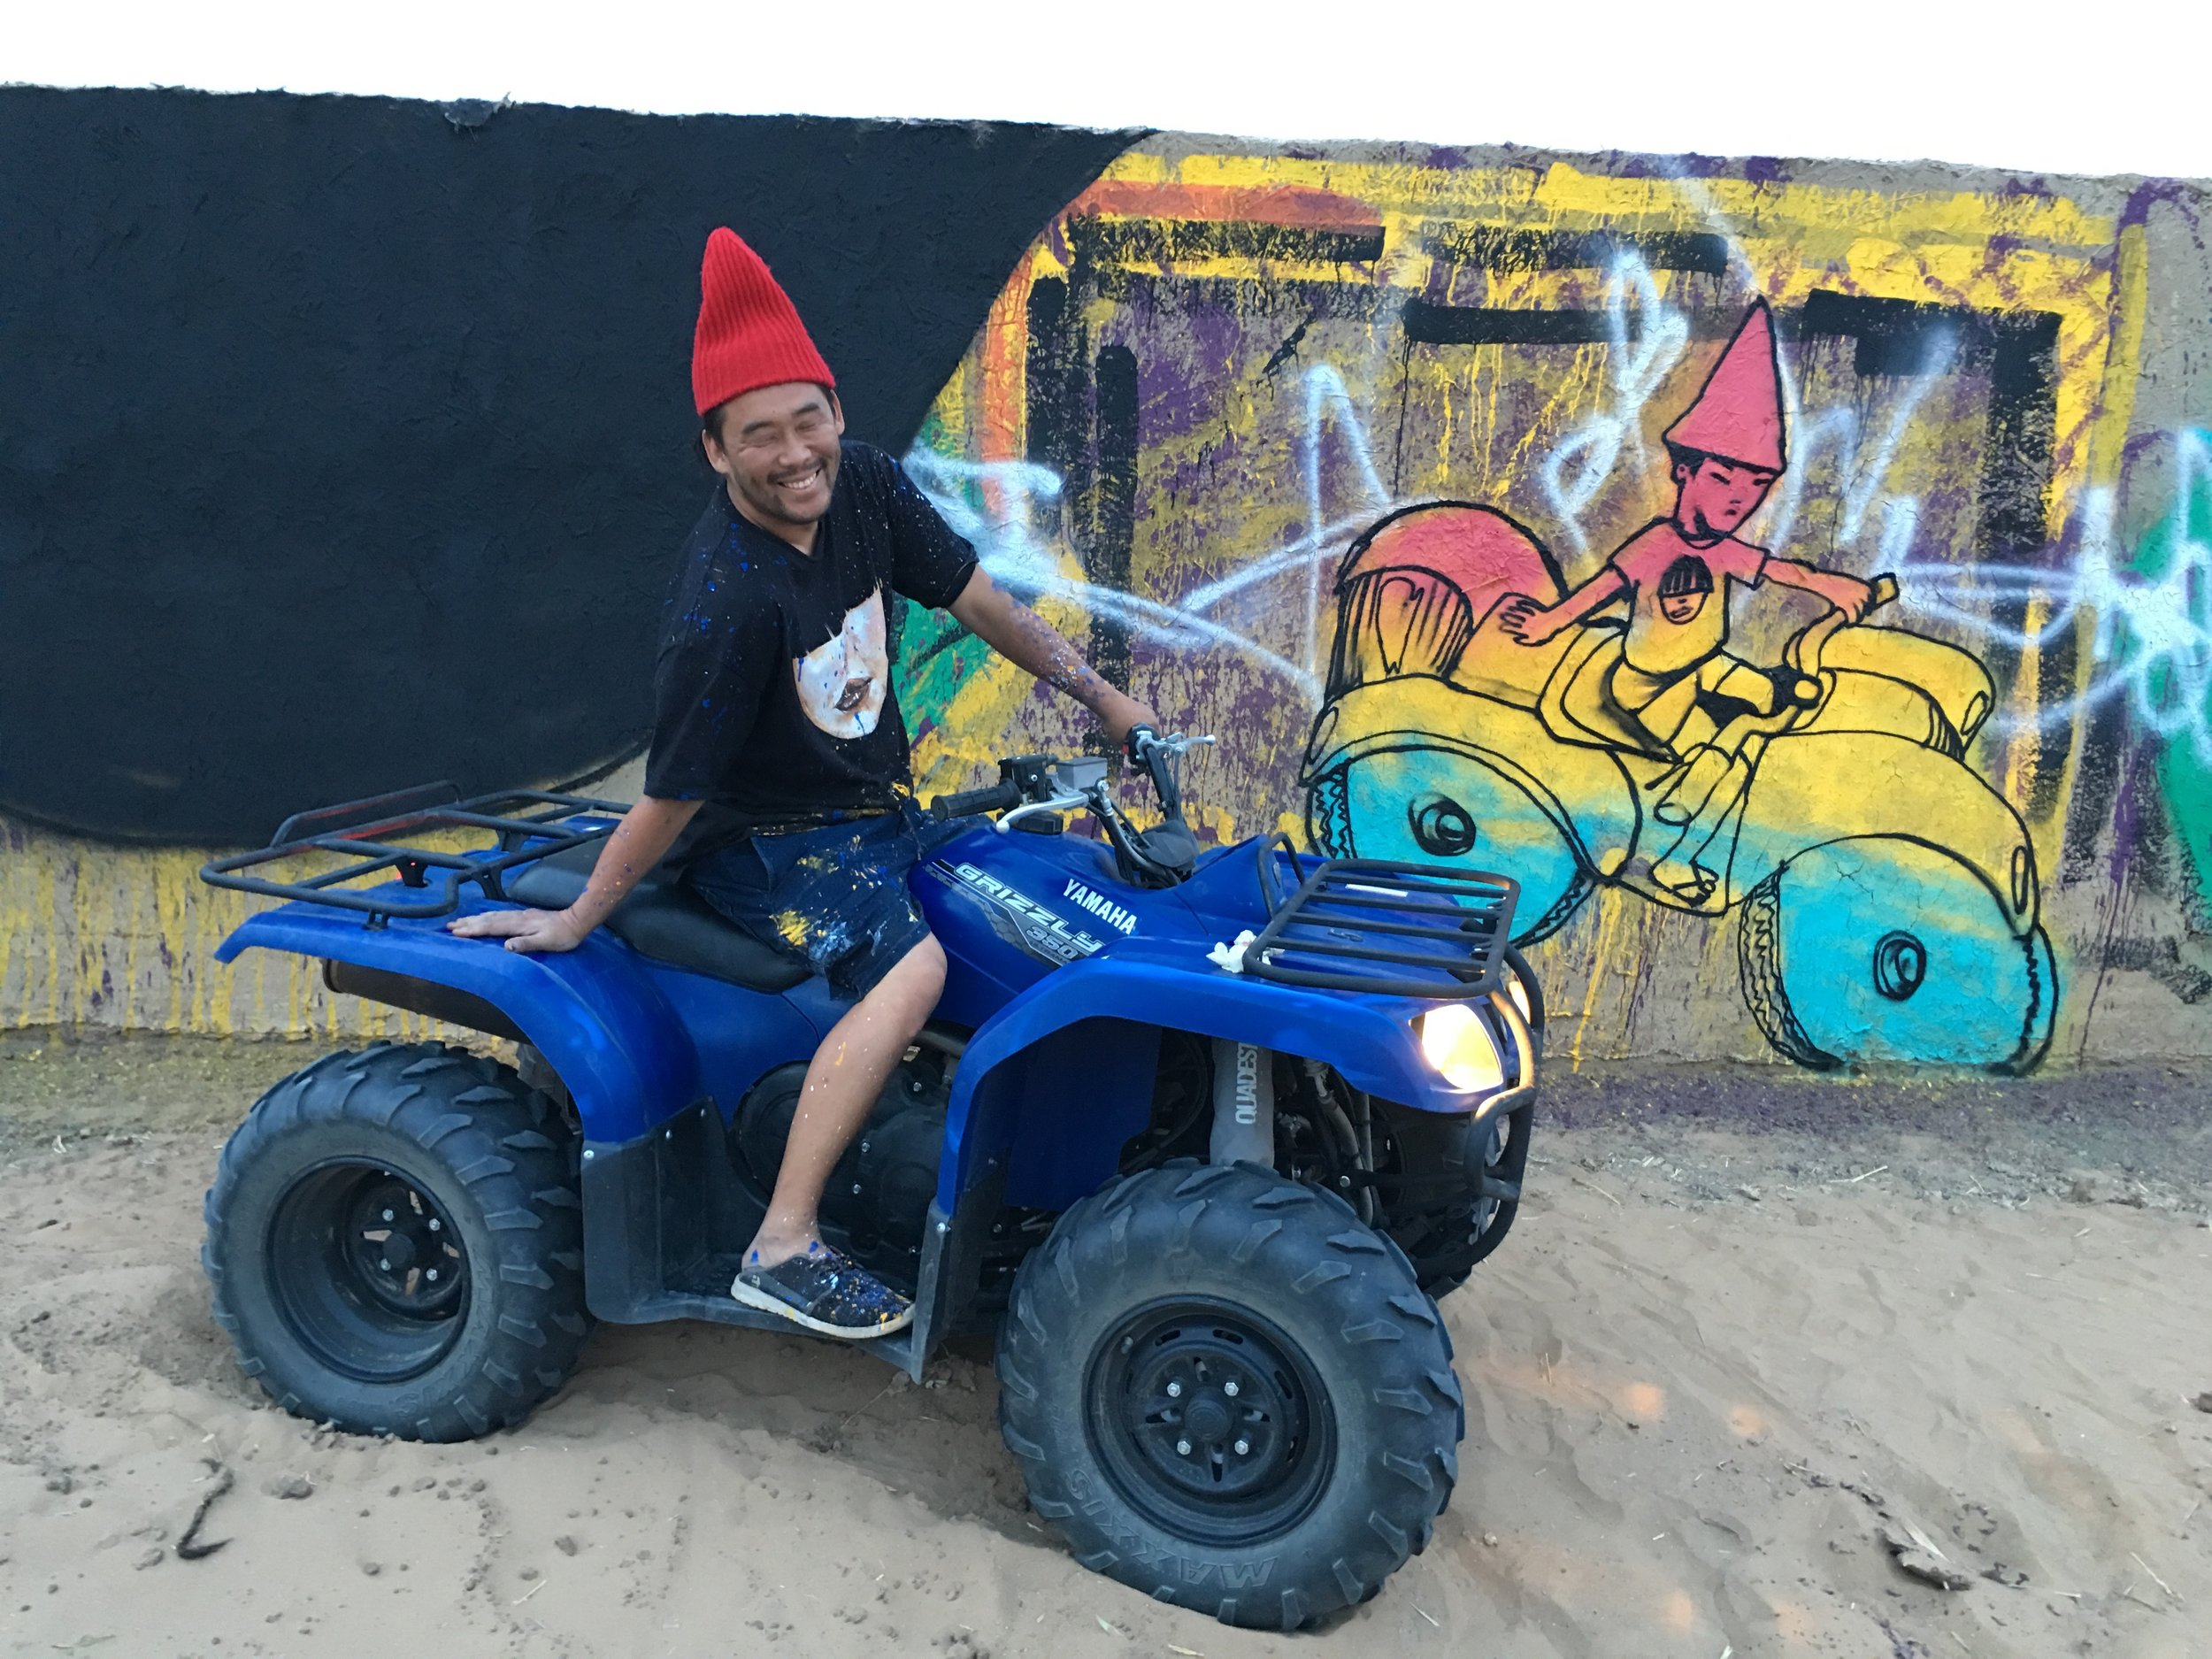 David Choe happy desert gnome. Igloo Hong, Morocco.